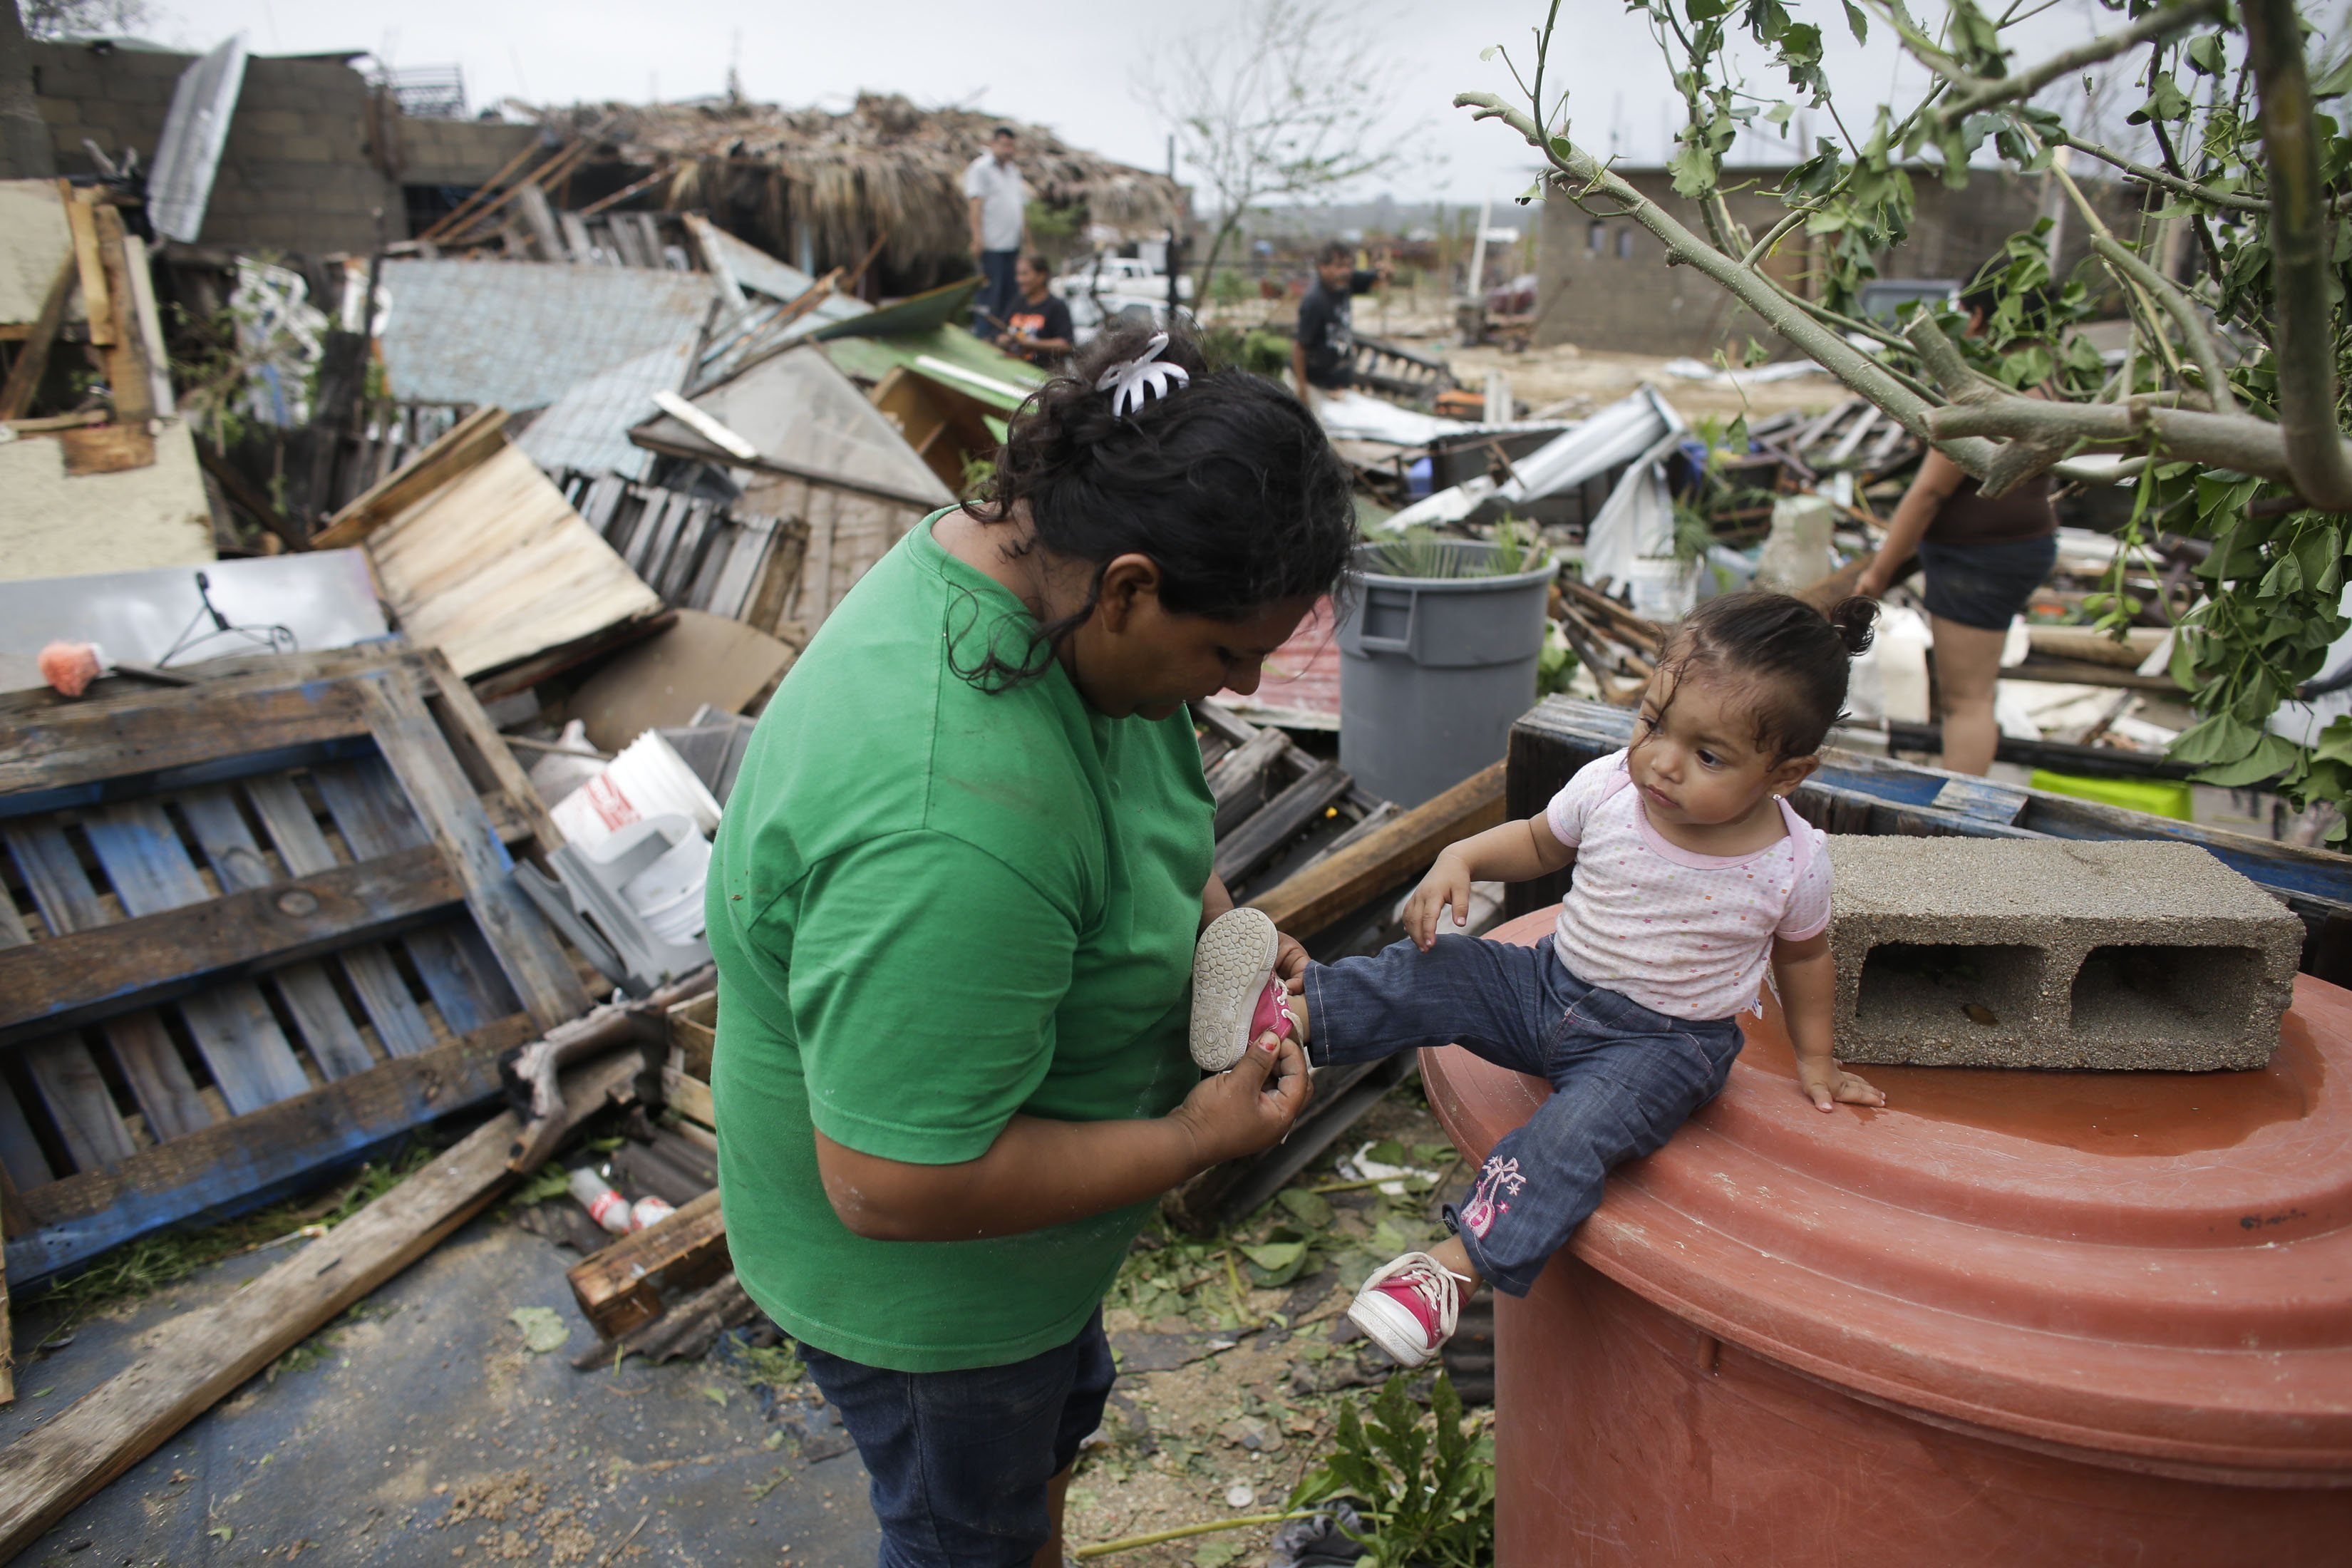 Maria Ramirez, left, puts the shoes on her one-year-old niece Maritza next to the remains of their home that was destroyed by Hurricane Odile in Los Cabos, Mexico,  Sept. 15, 2014.